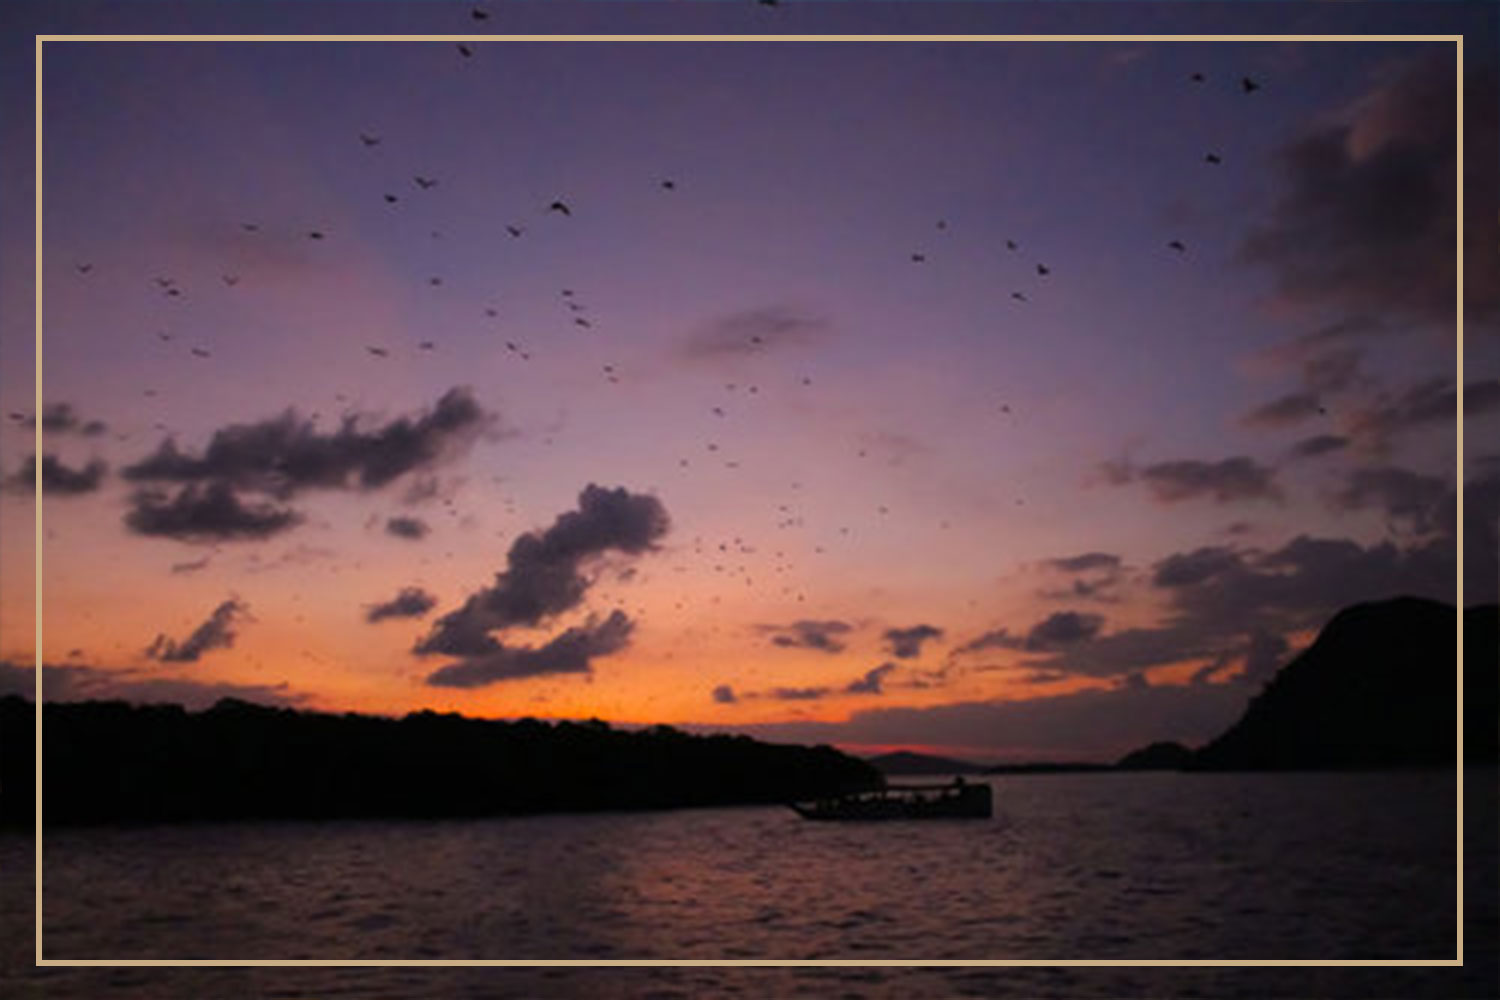 Horsehoe Bay- Bat-watching-Experience